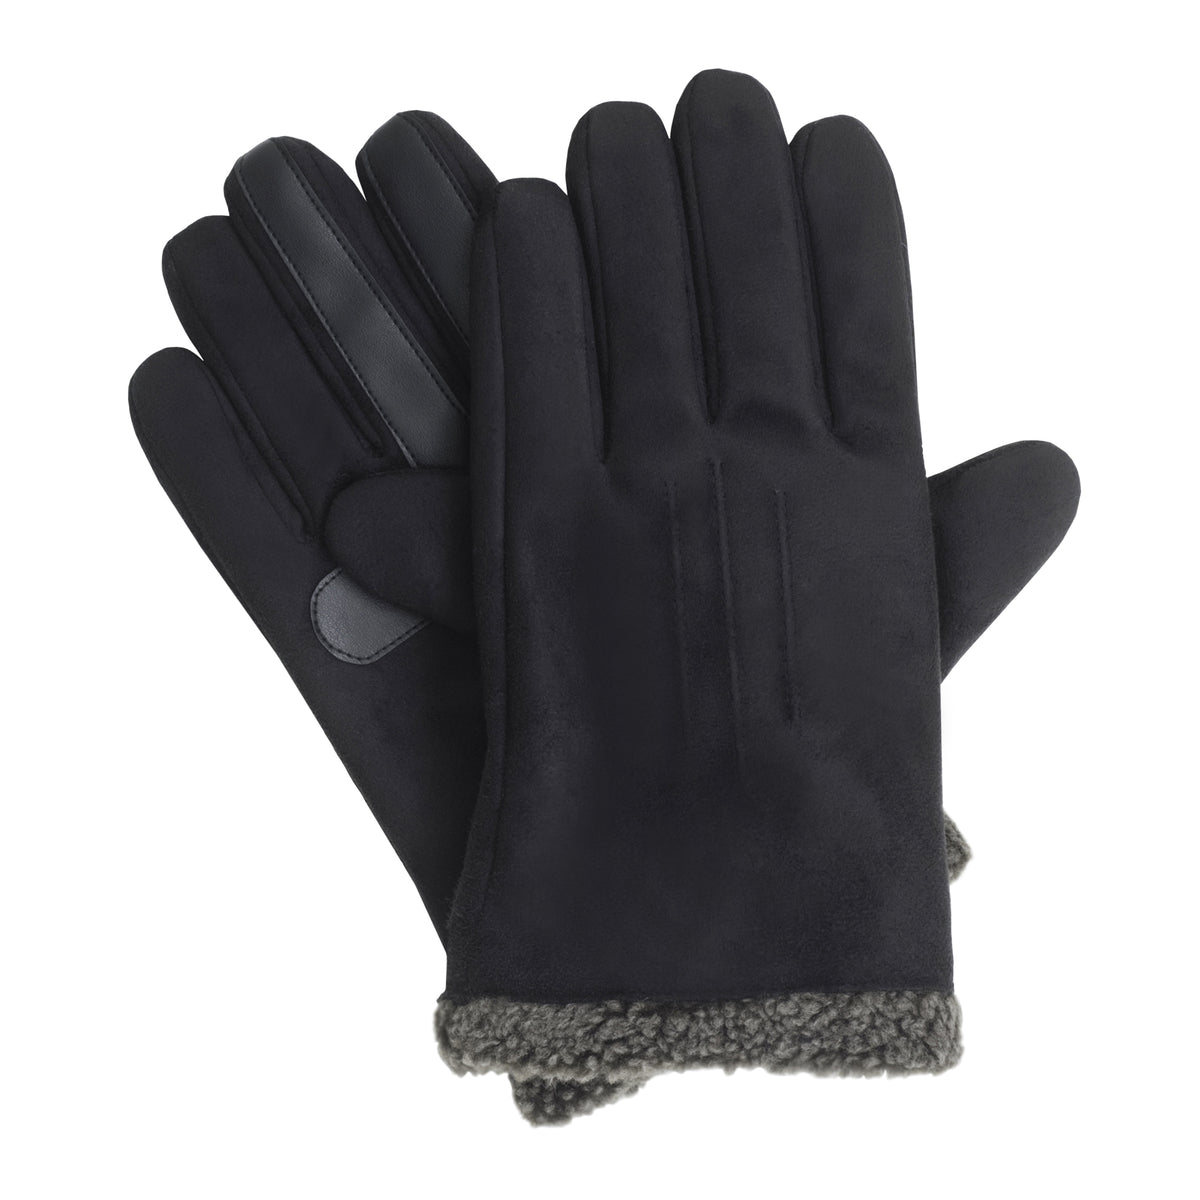 Isotoner Men's SmarTouch Faux Suede Gloves